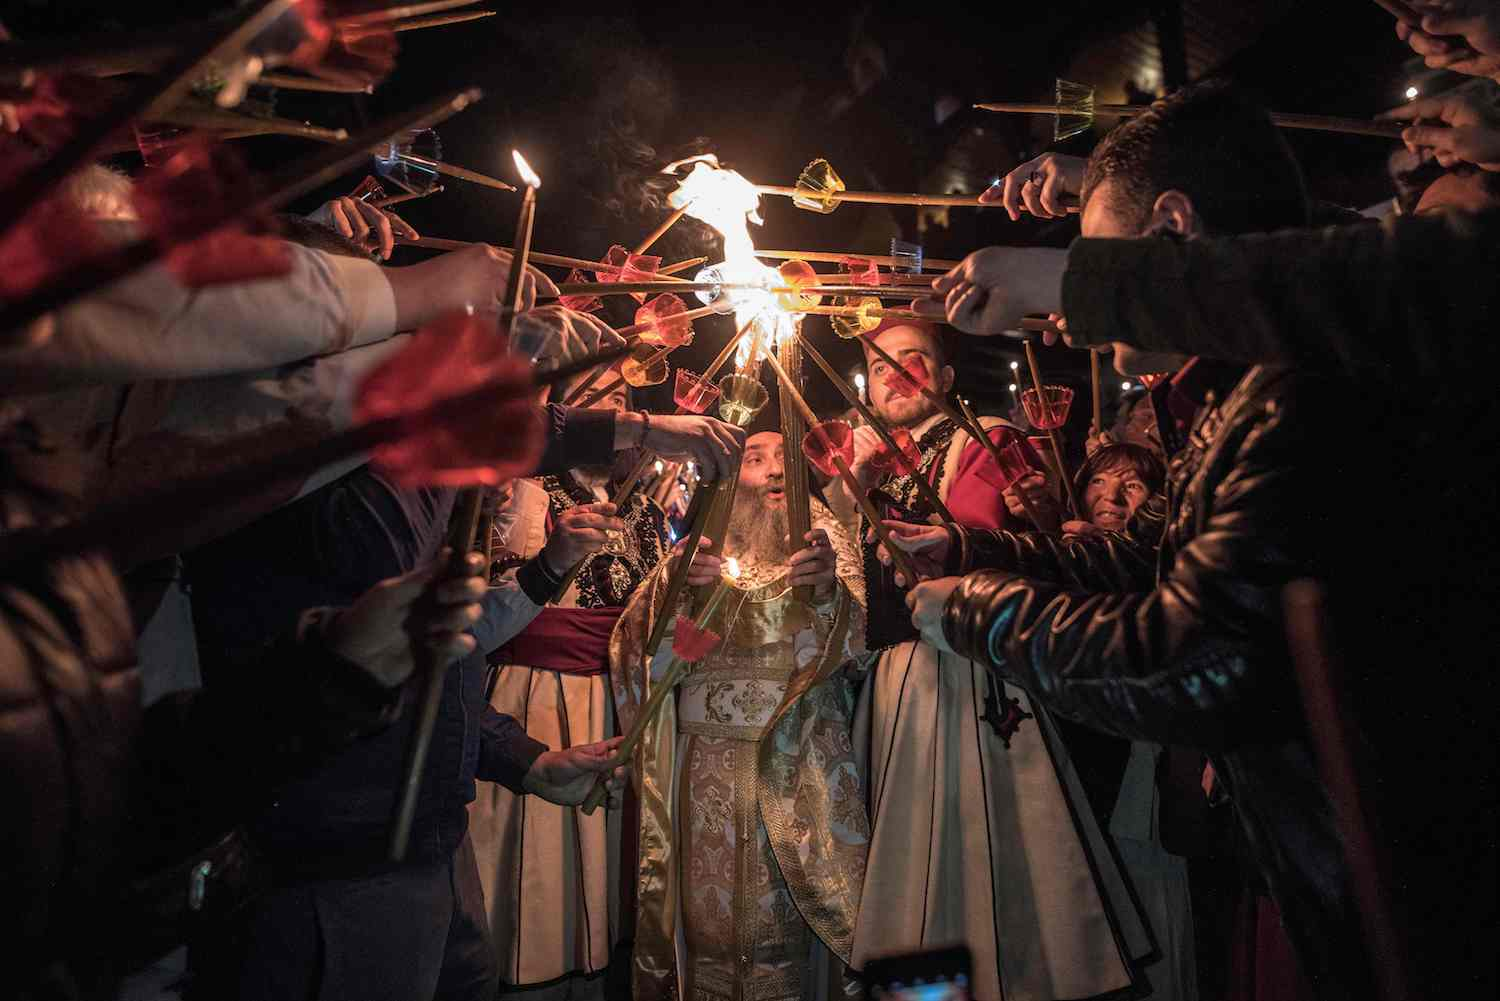 Macedonian Orthodox worshippers light candles from the holy fire that arrived from Jerusalem during the Easter service at the St. Jovan Bigorski monastery, some 145 km west of the capital Skopje,April 8, 2018.